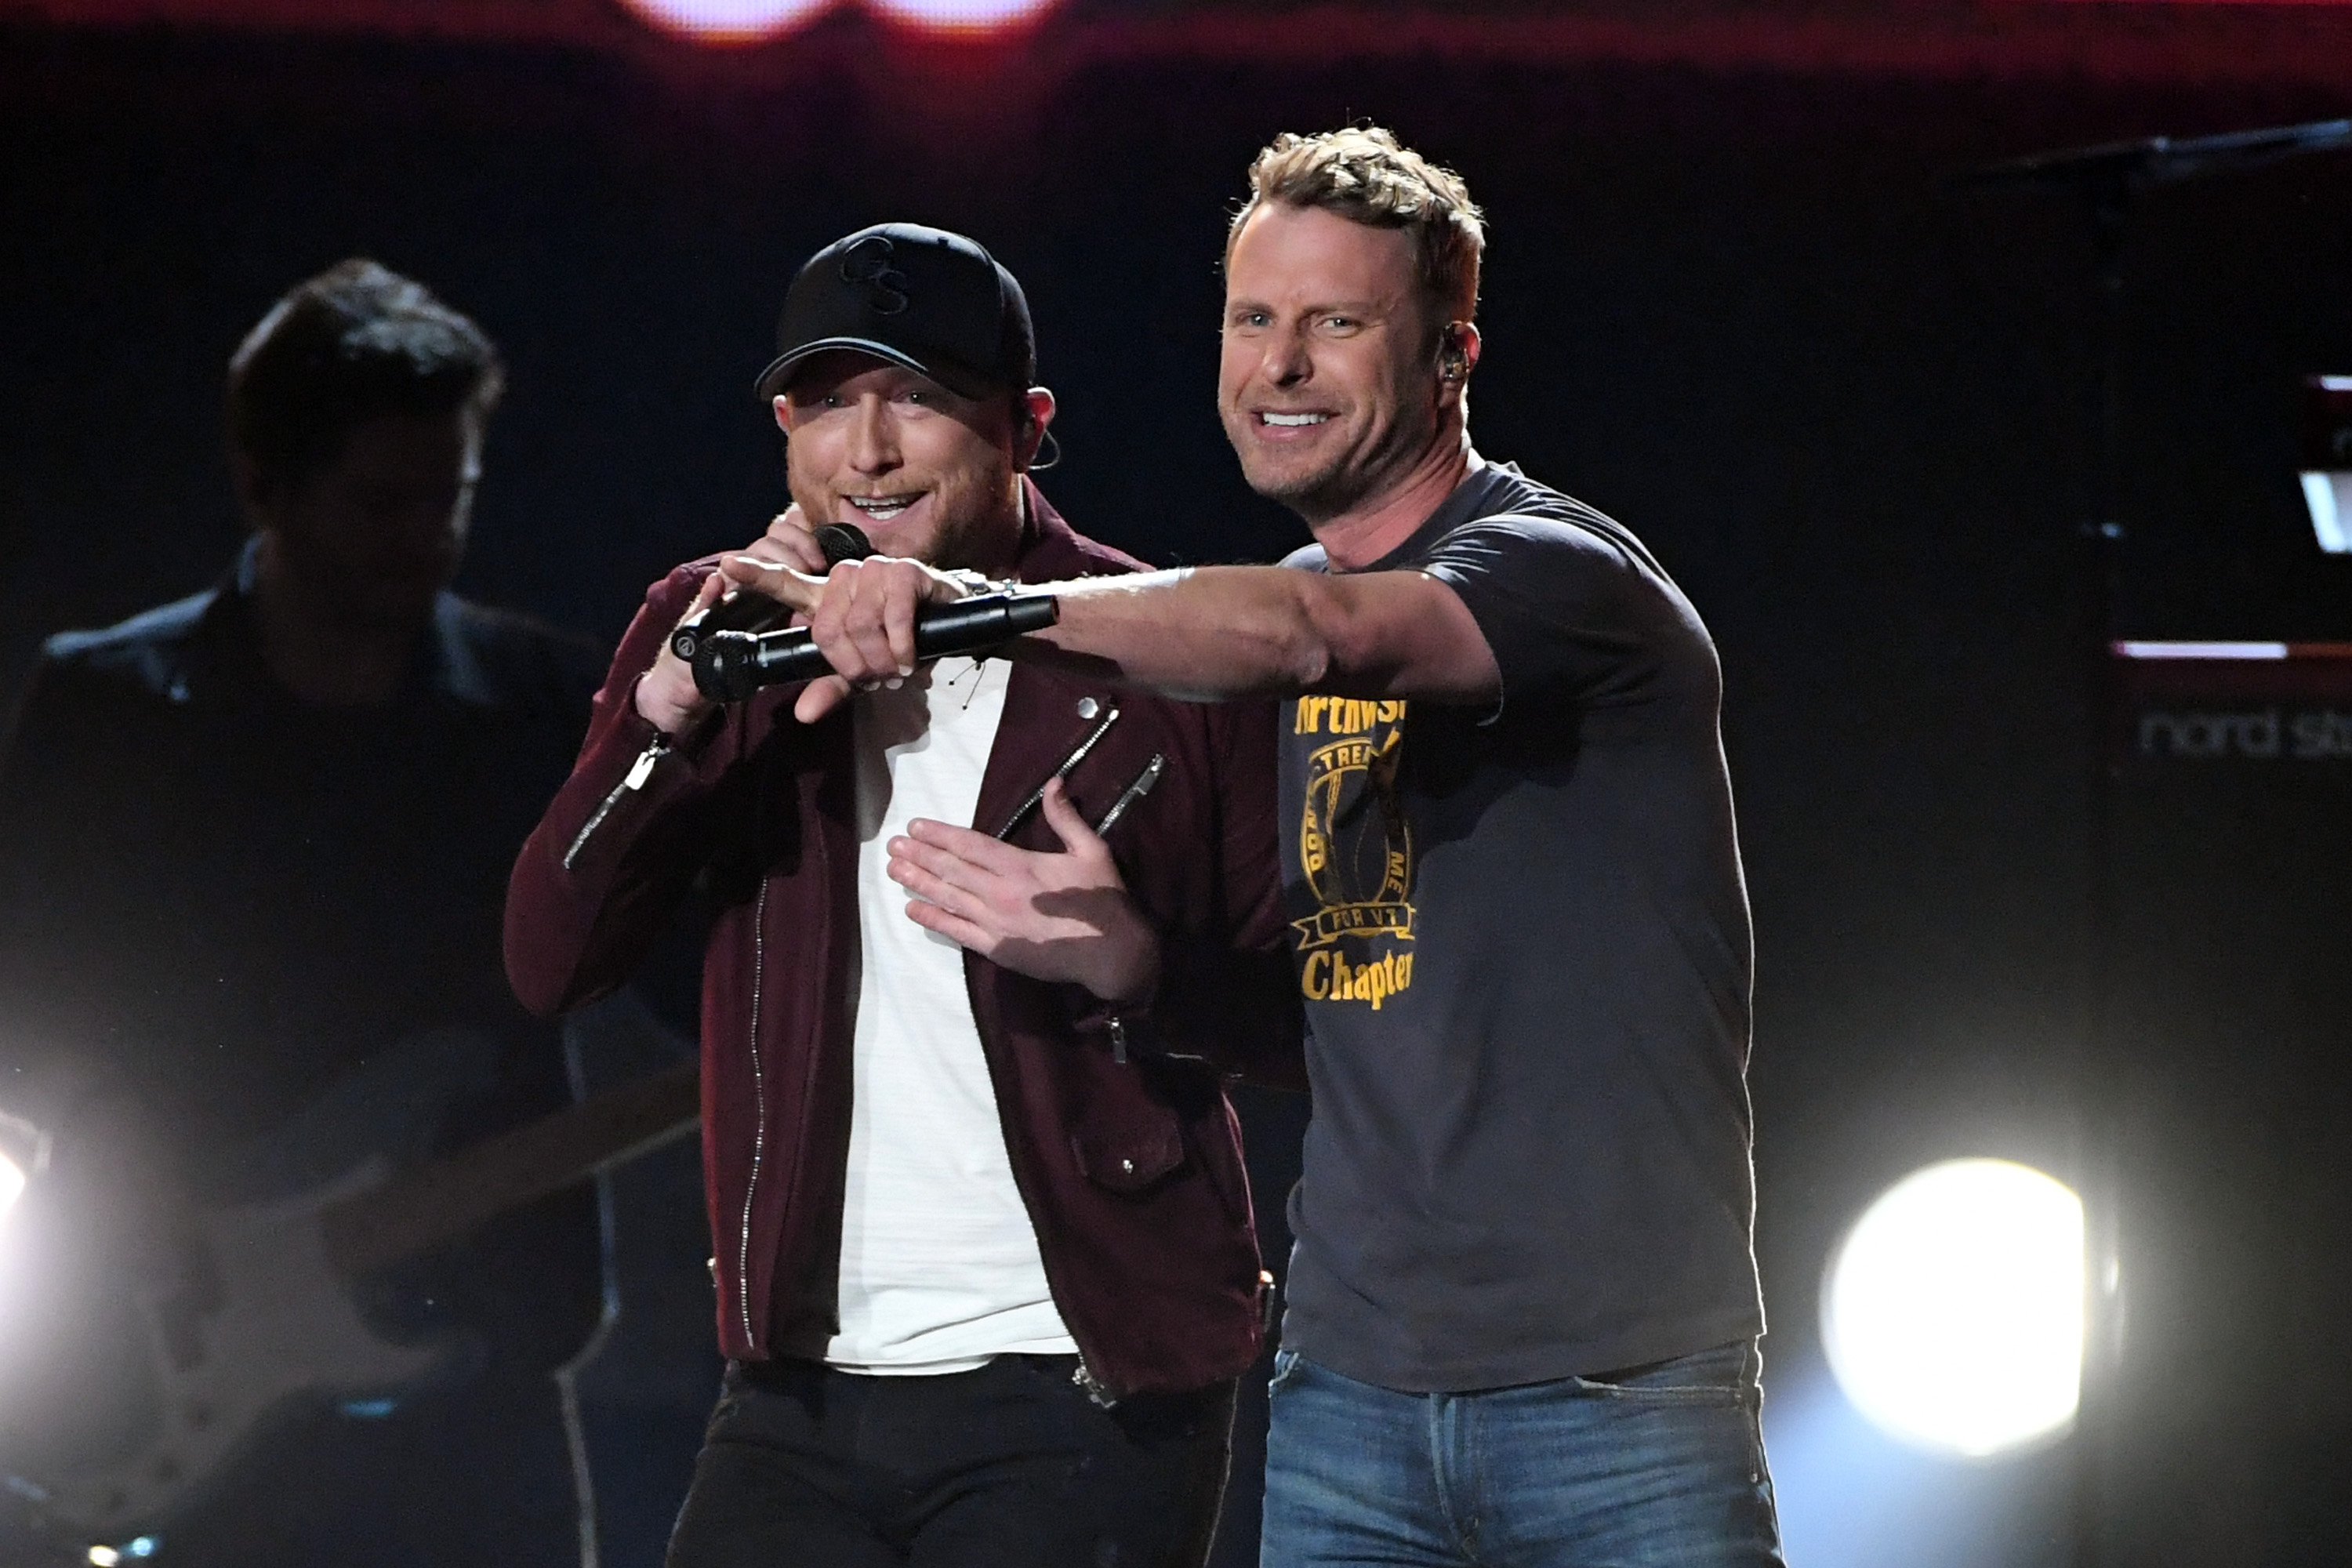 Cole Swindell And Dierks Bentley Bring The Party To The